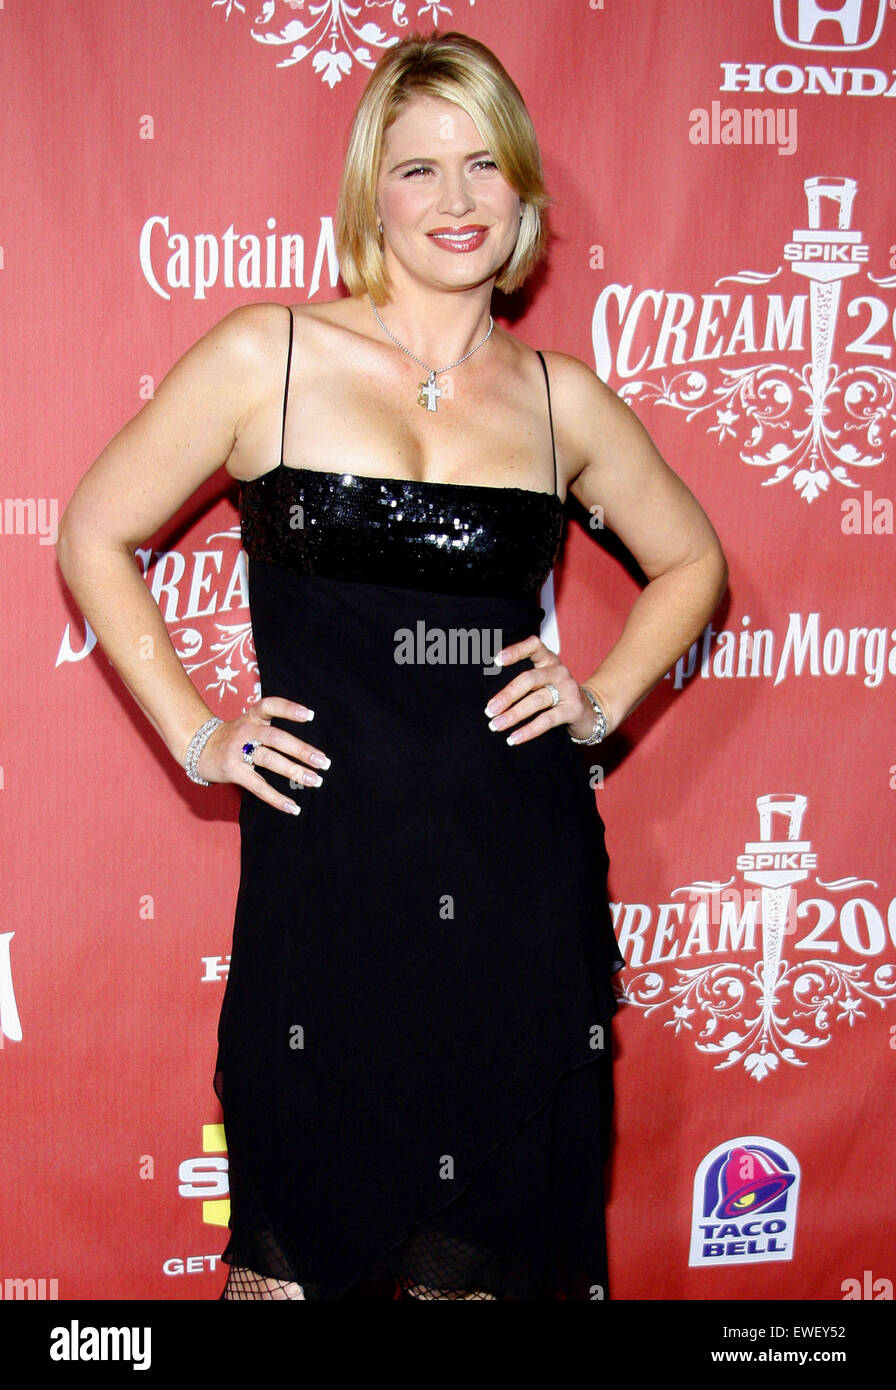 Kristy Swanson at the 2007 Spike TV's Scream Fest held at the Greek Theater in Hollywood on October 19, 2007. - Stock Image